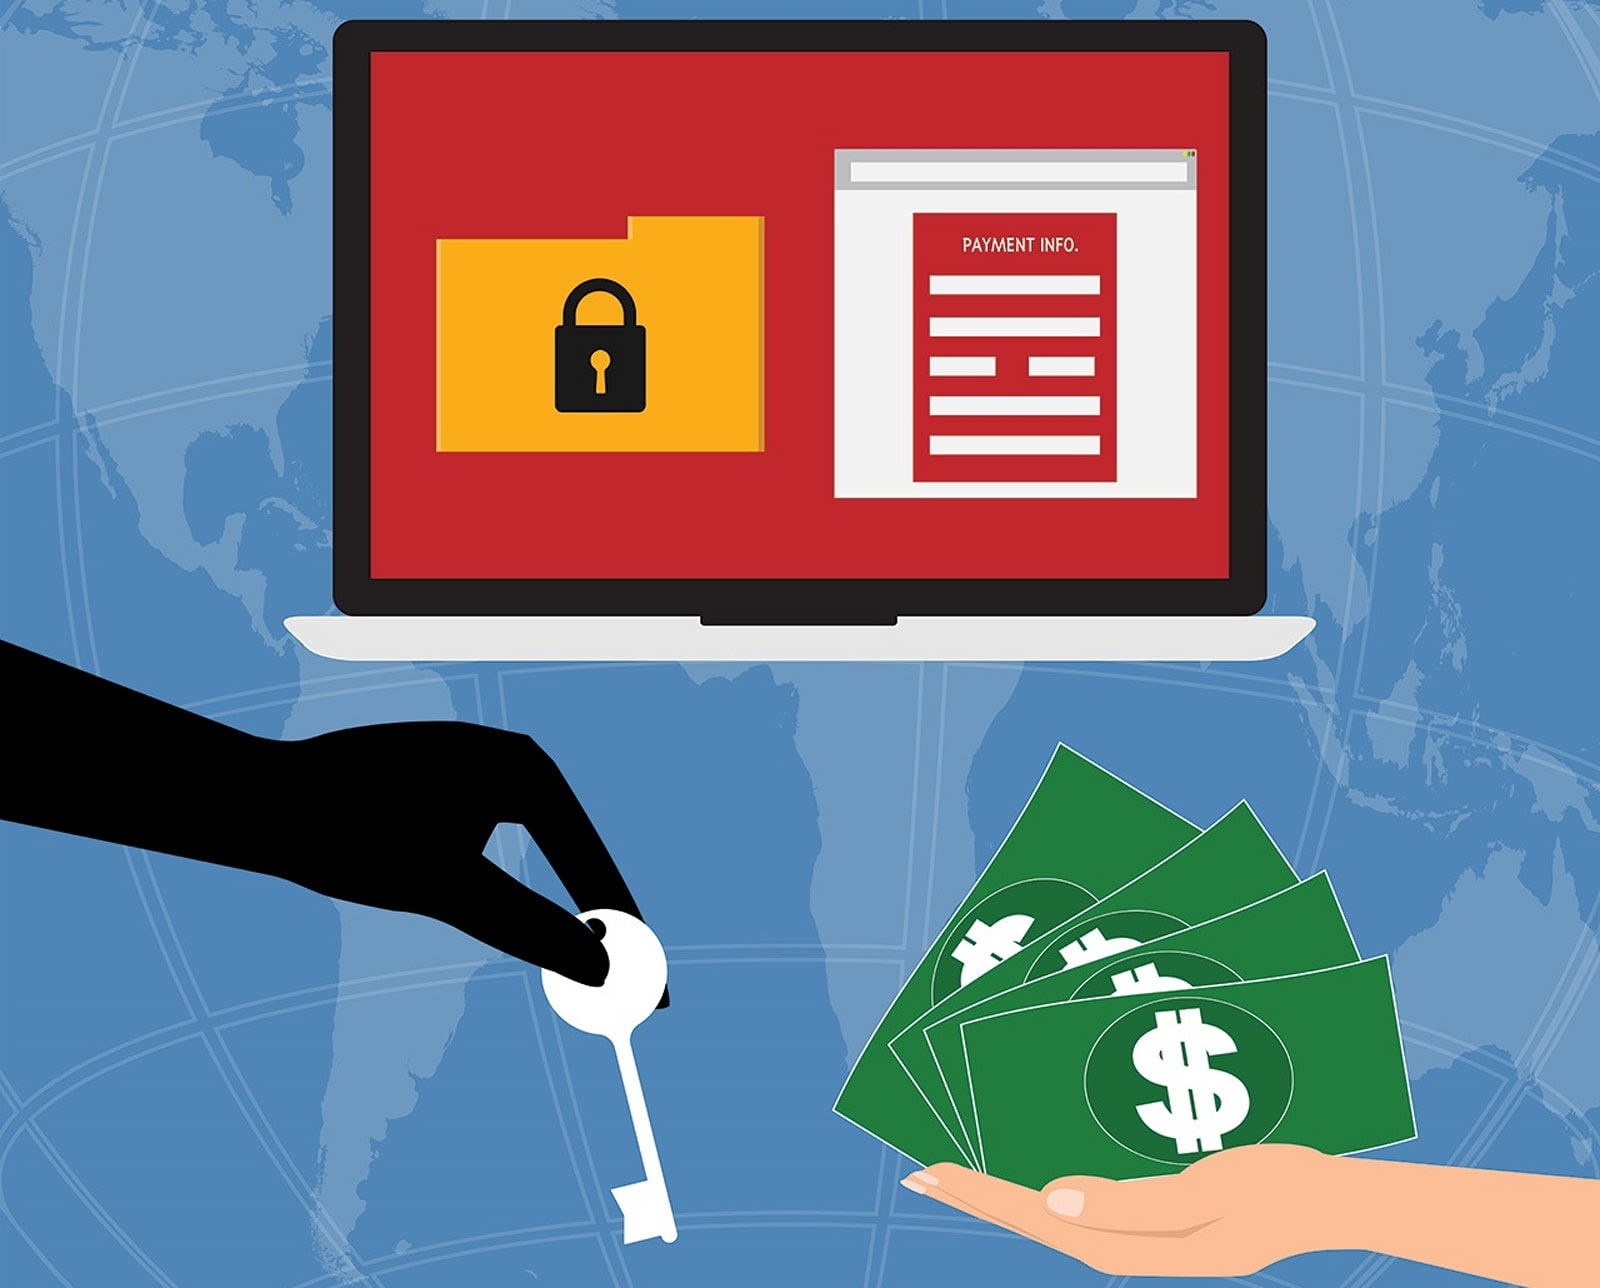 No More Ransom' helps you fight ransomware without paying